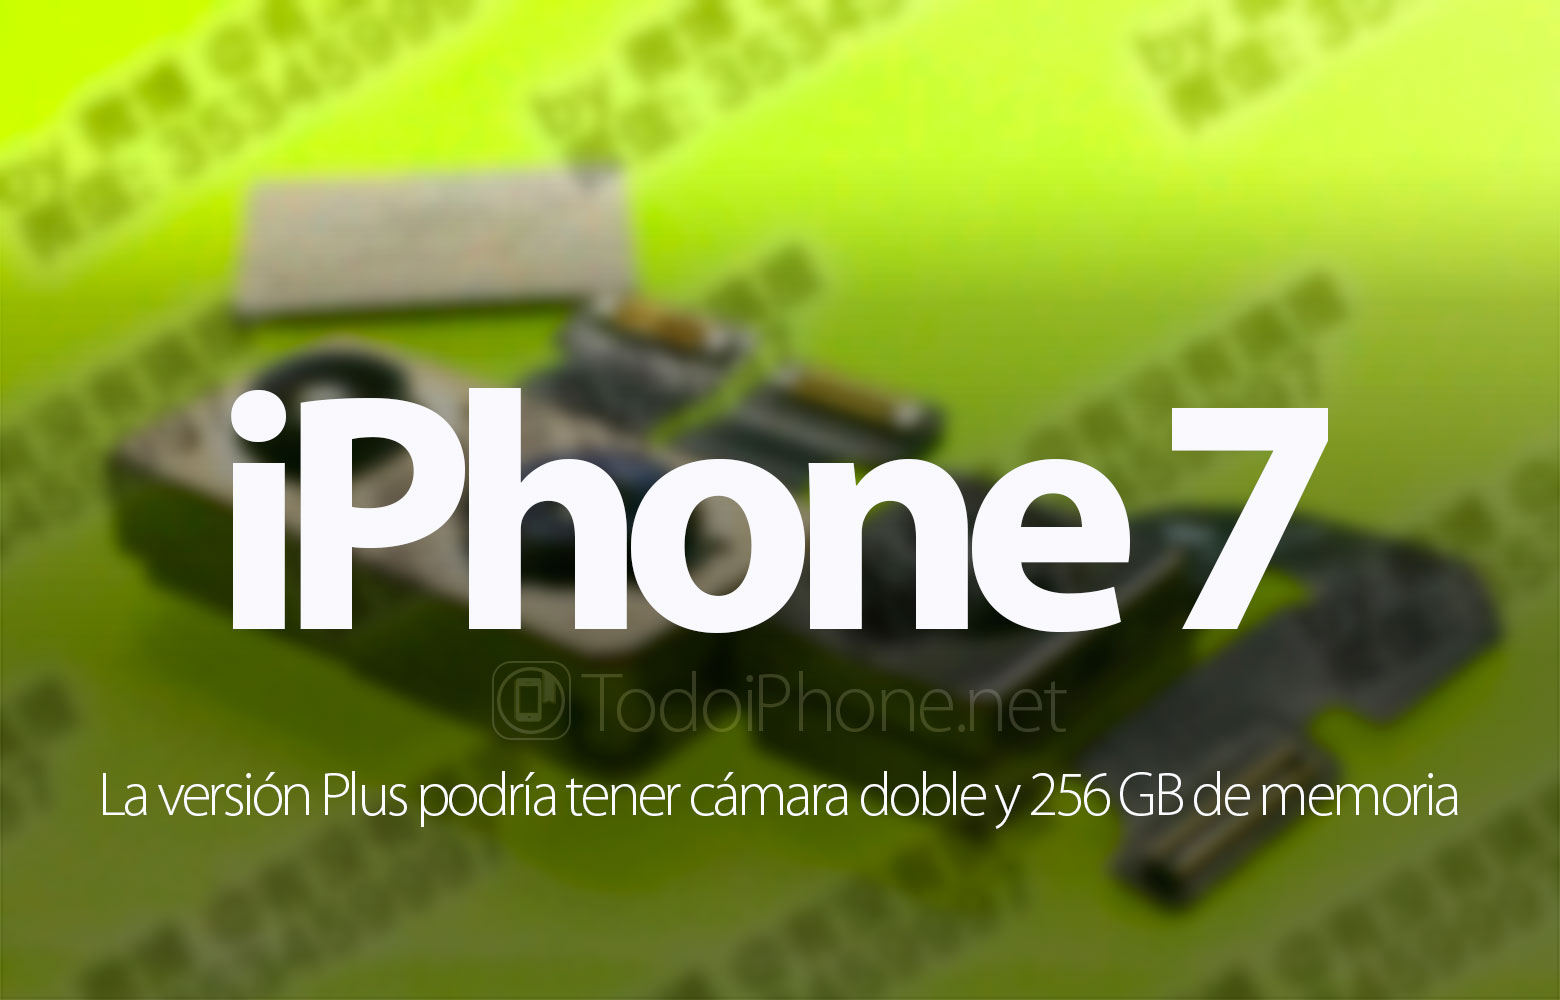 iphone-7-plus-camara-doble-256-GB-memoria